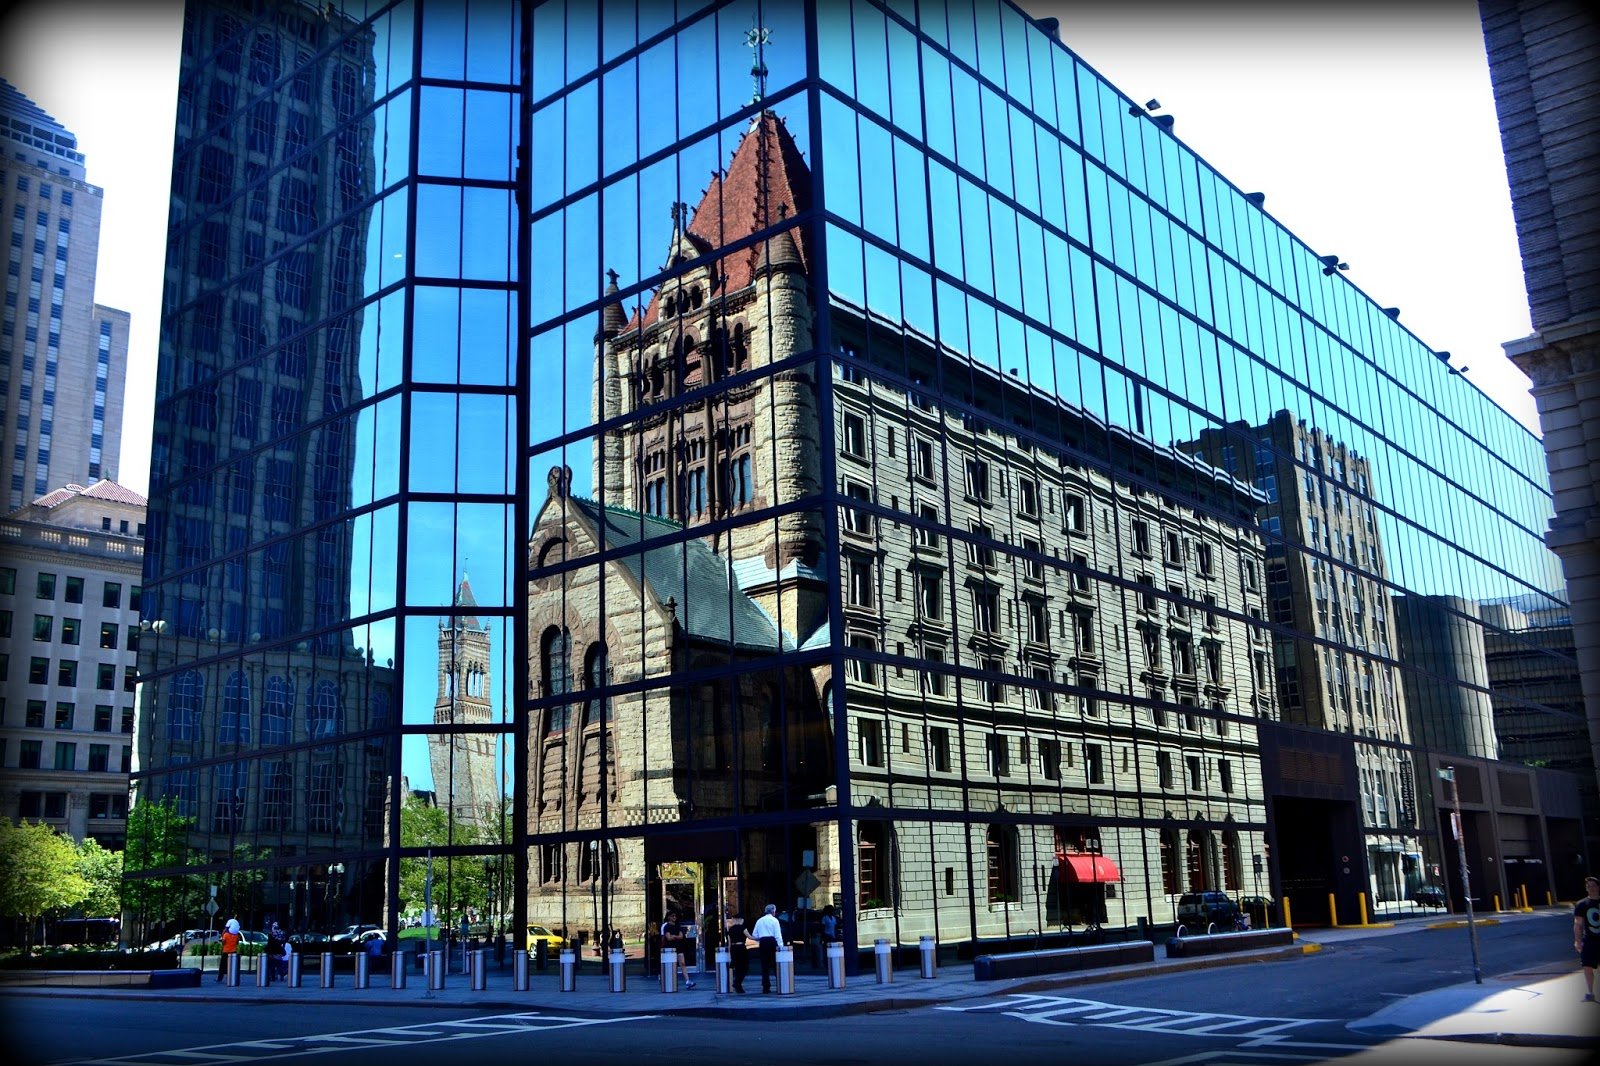 hancock, tower, copley, square, boston, massachusetts, reflections